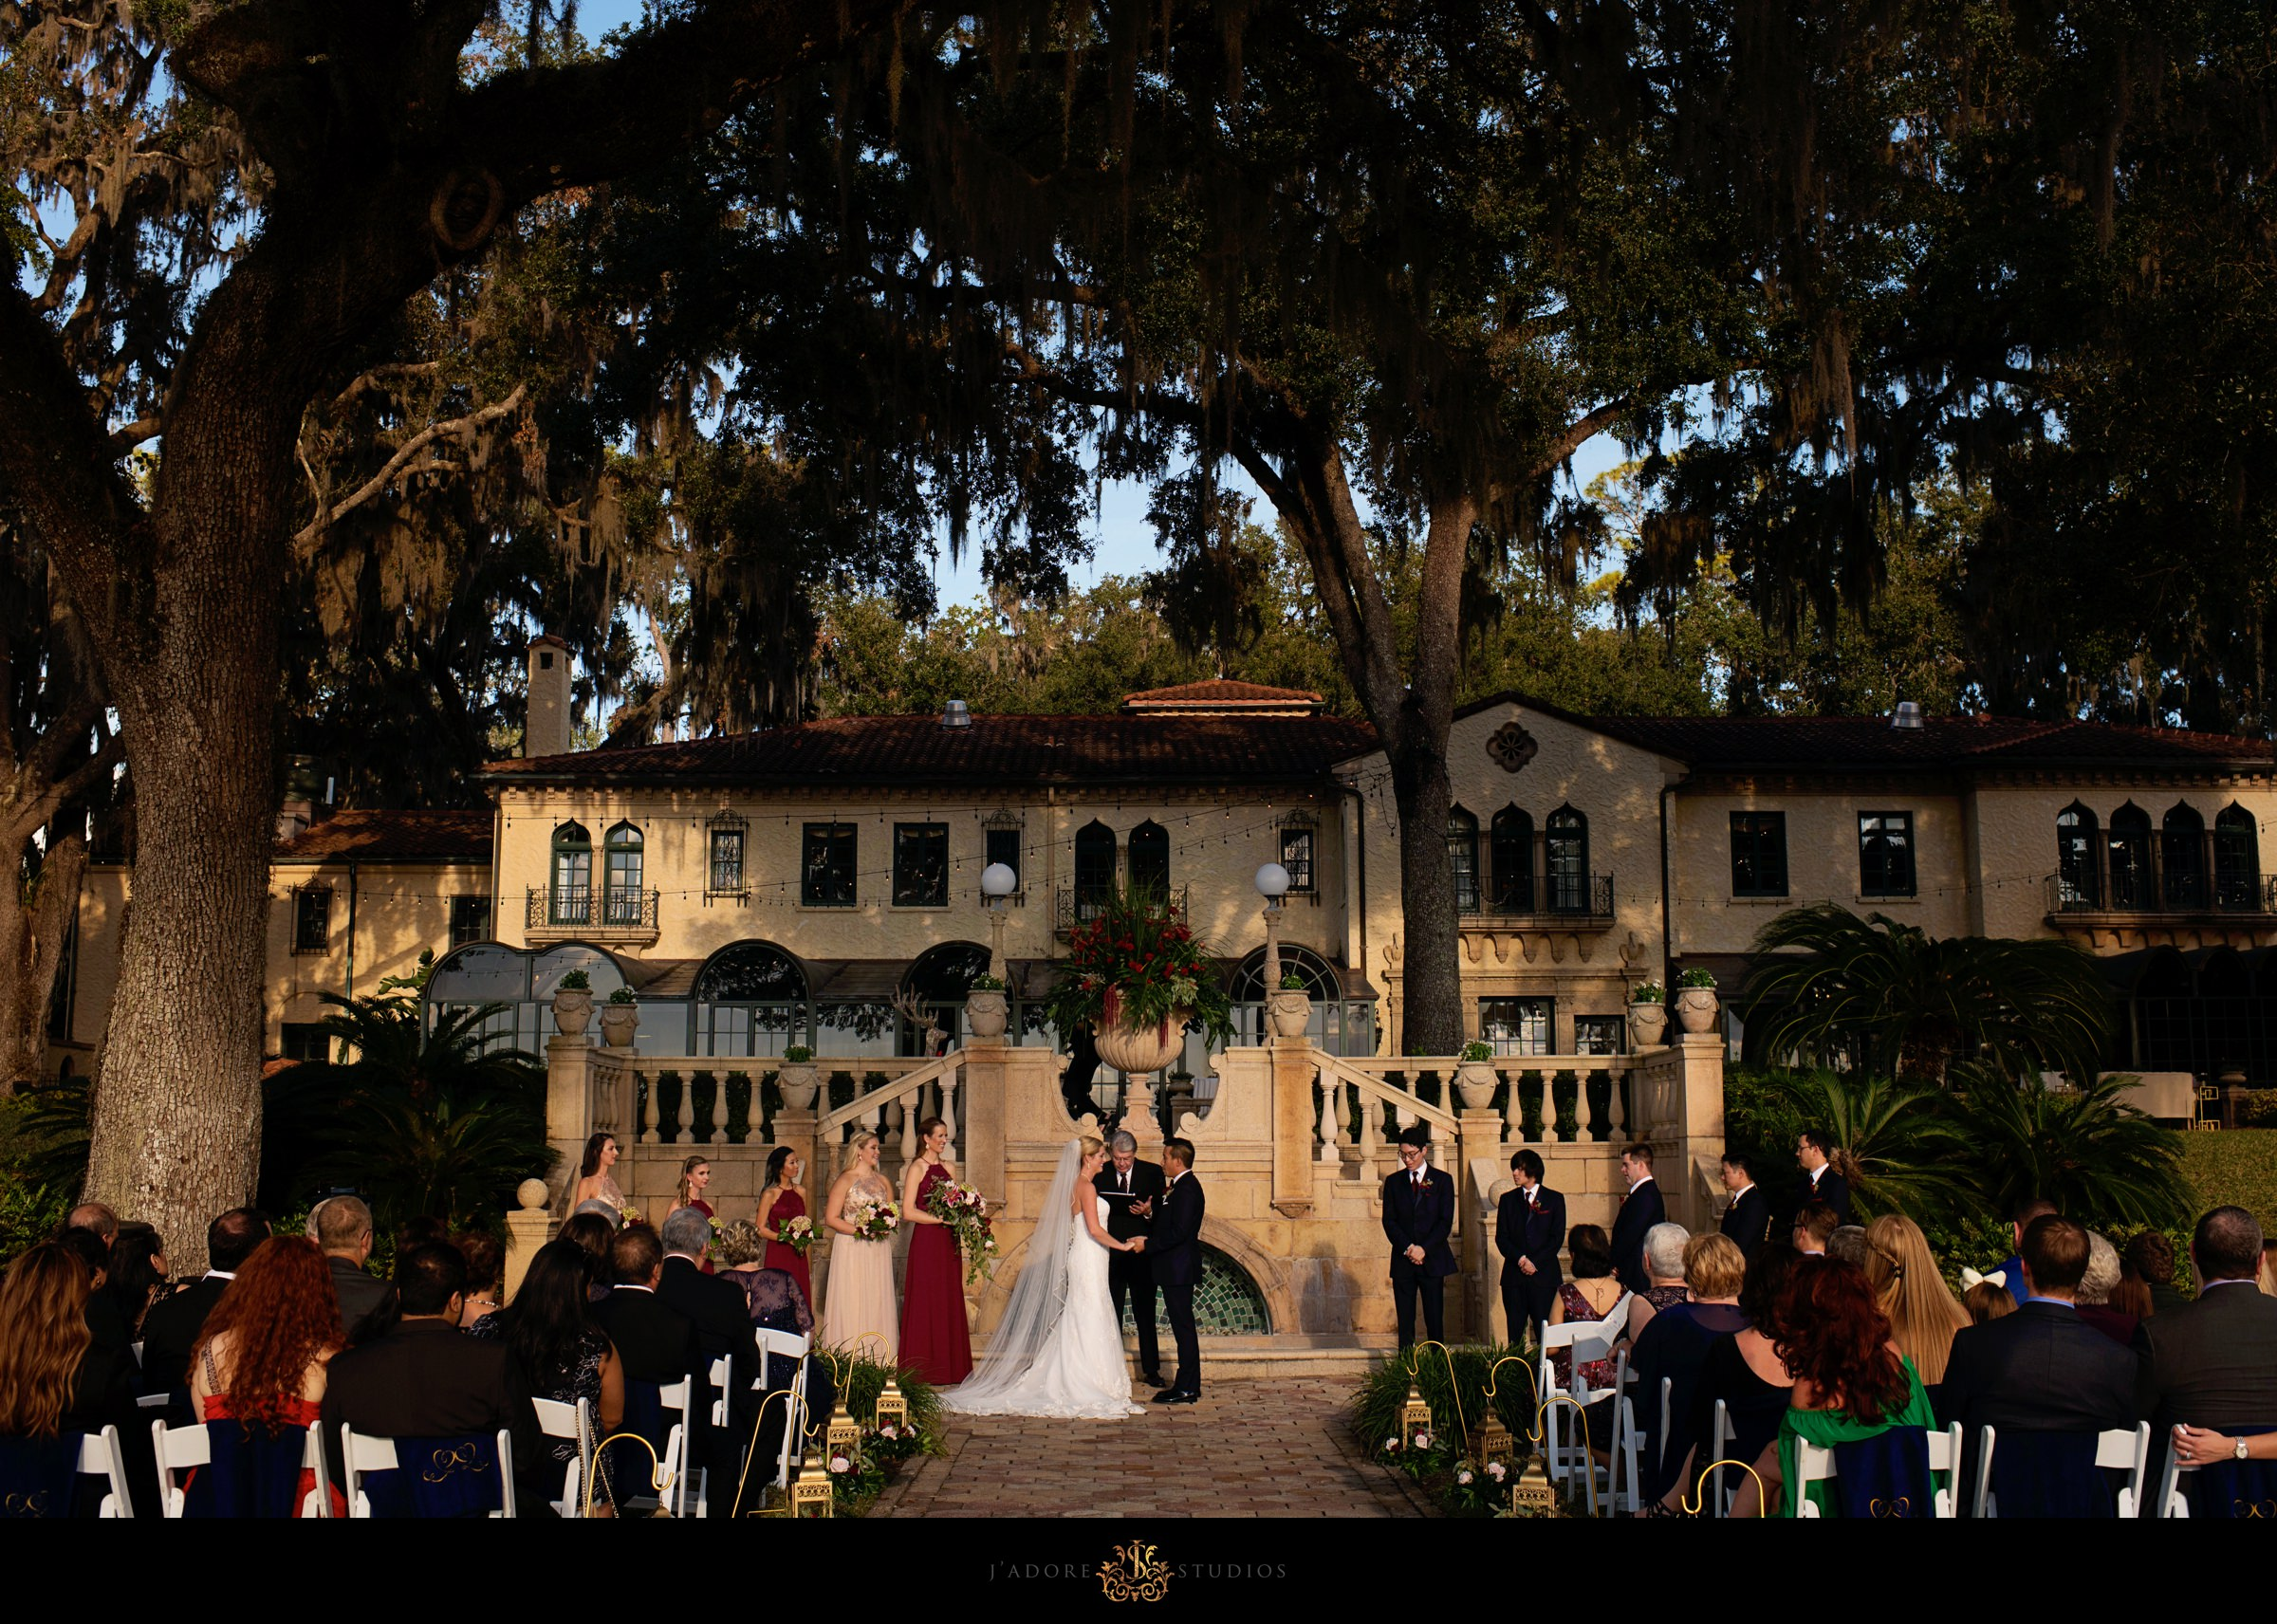 Ceremony at Epping Forest Yacht Club Jacksonville Wedding Venue.  Bride and groom saying vows in front of guests and bridal party